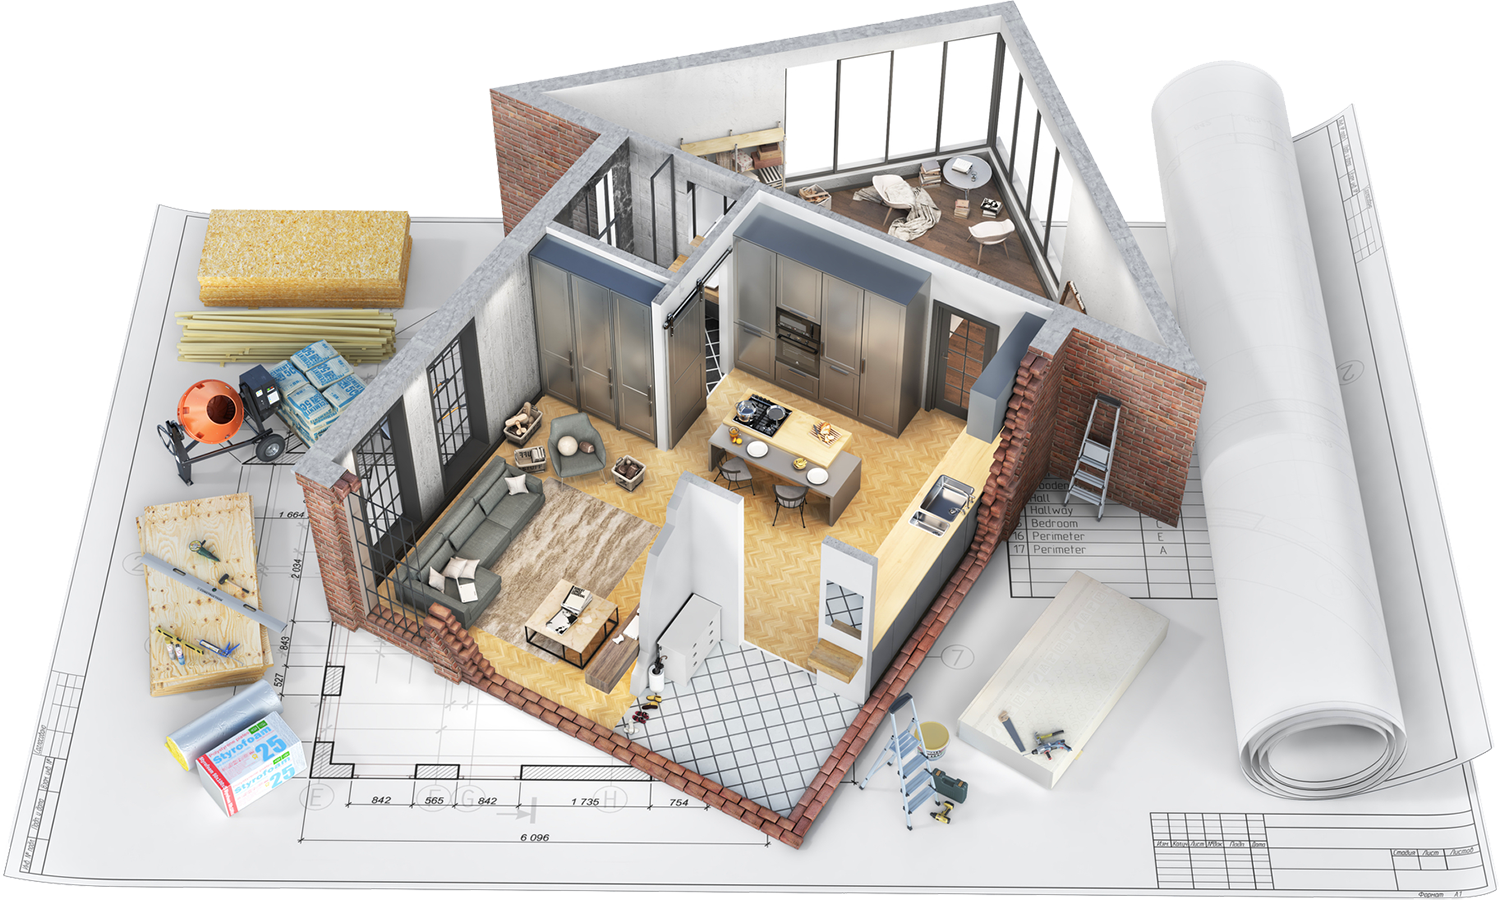 Interior and exterior model of a house being constructed before home inspection